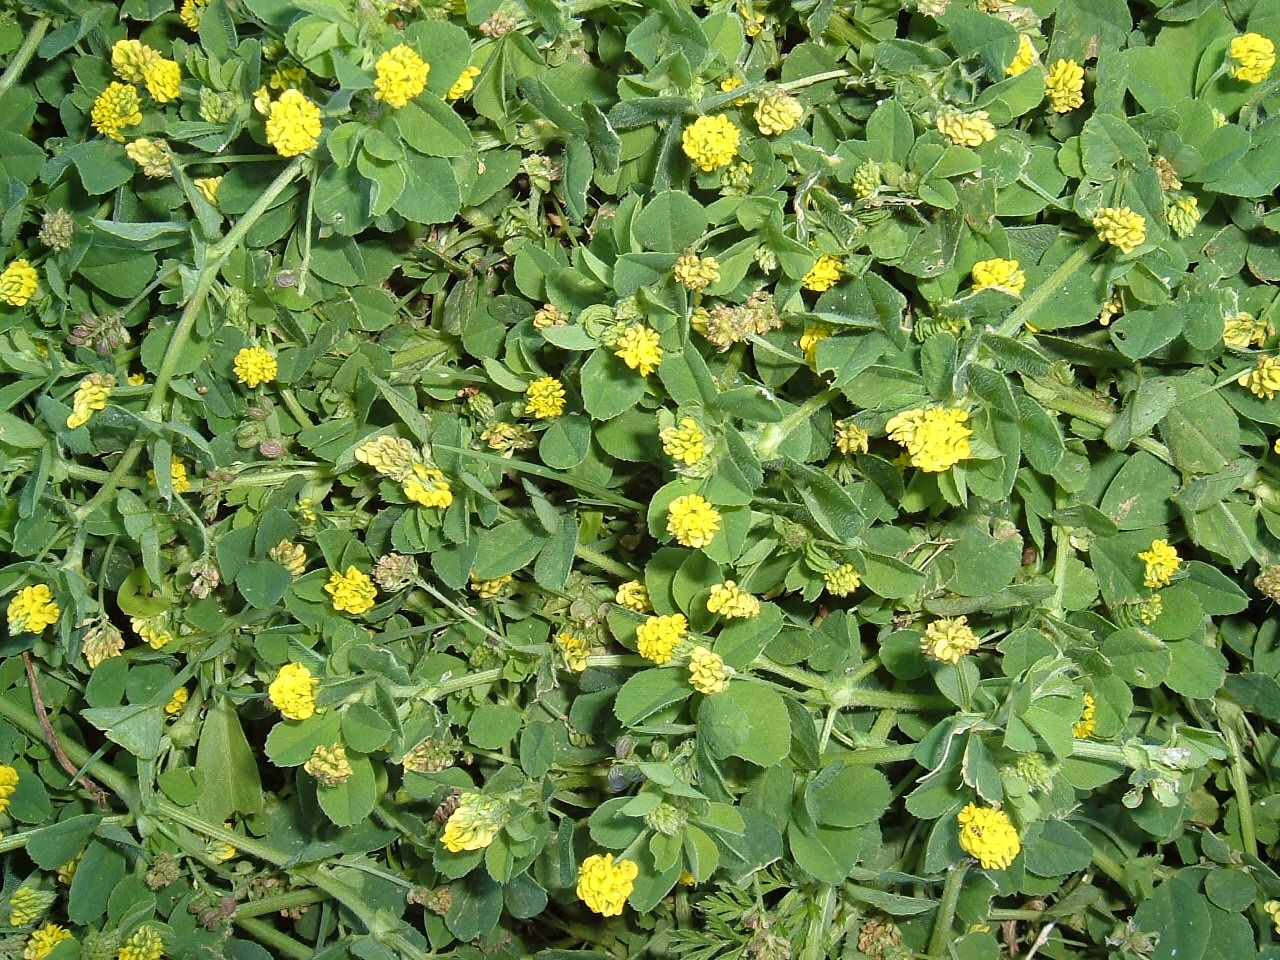 Black Medic Clover Lawn Weed May 13 2015 Black Mediclesseryellow